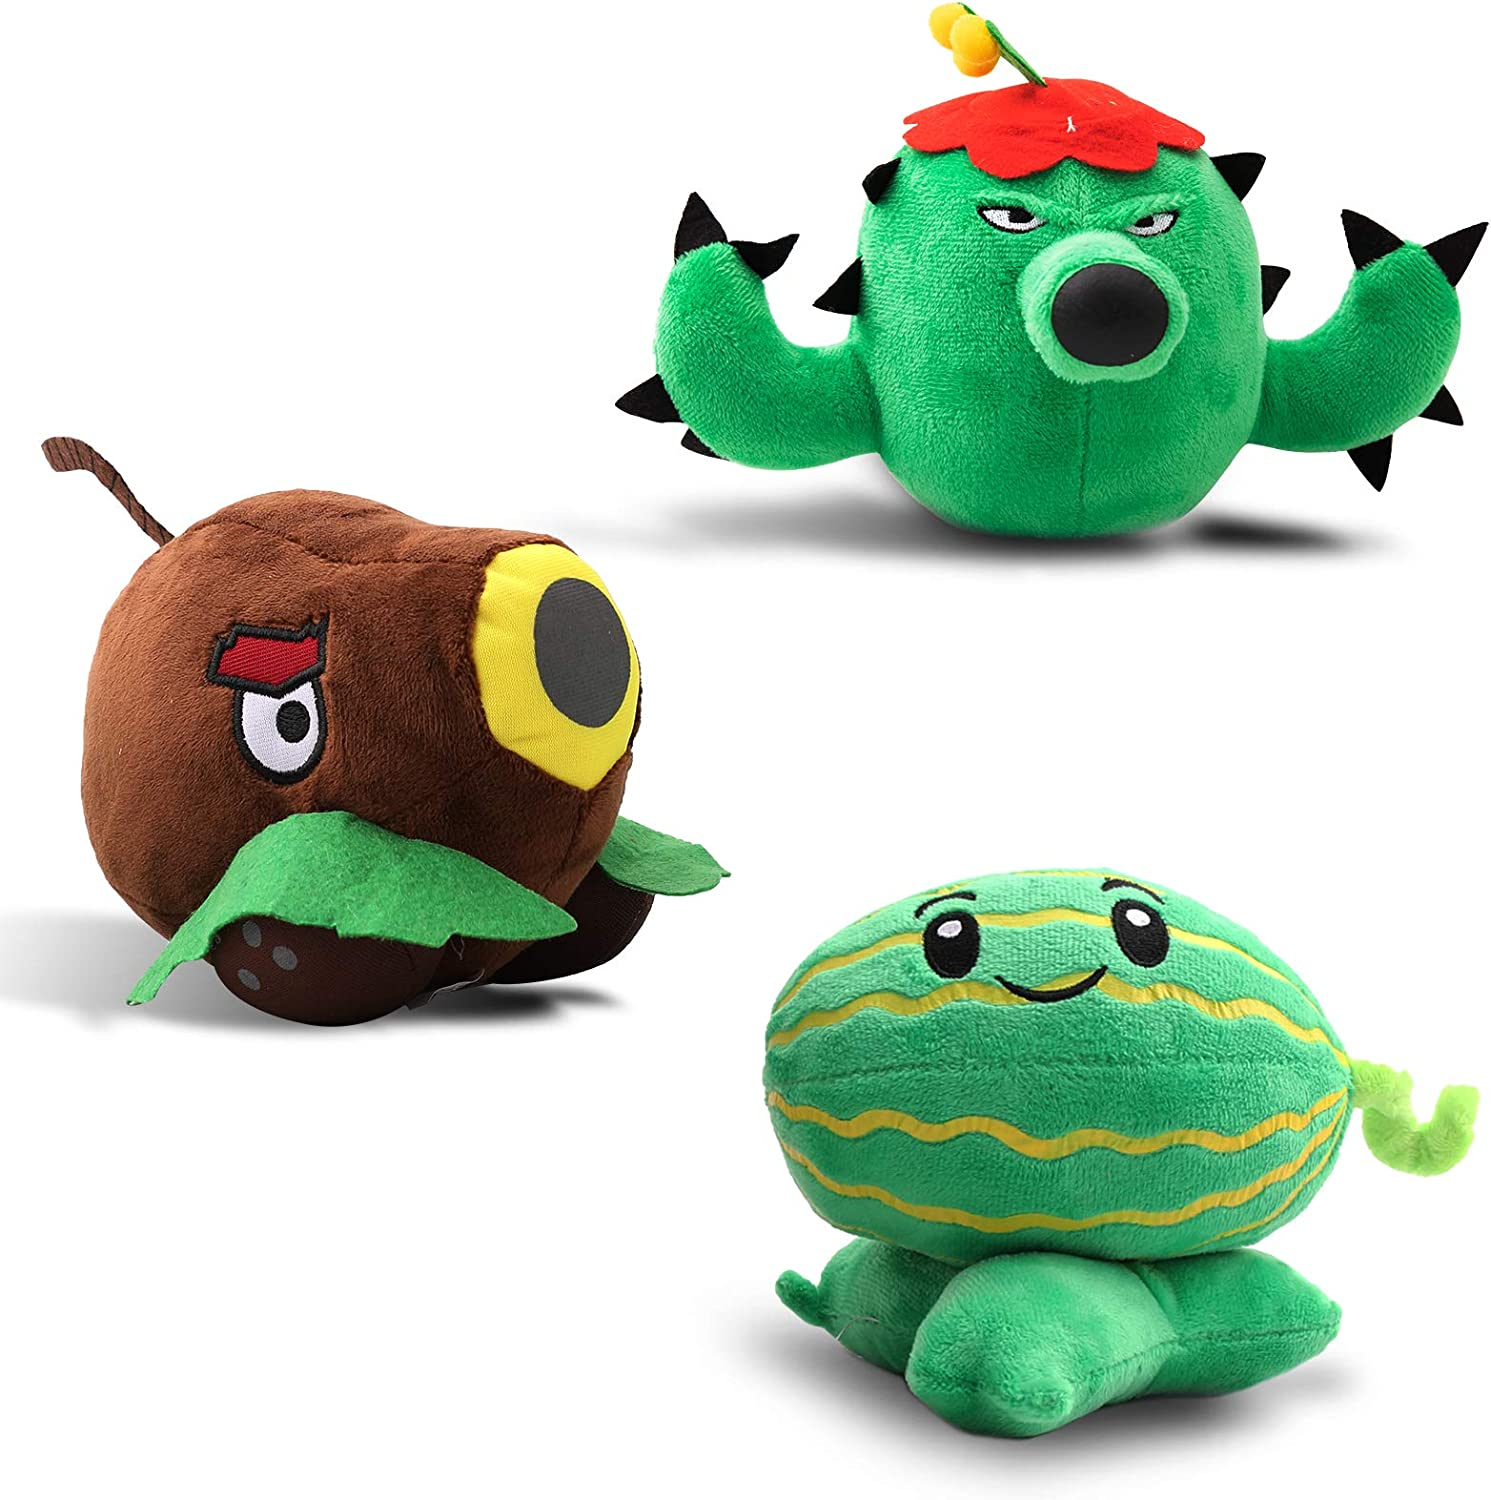 Maikerry 3 Pieces Plush Plants vs. Popular shop is the lowest price New products, world's highest quality popular! challenge Great Figure Zombies 12 Toy